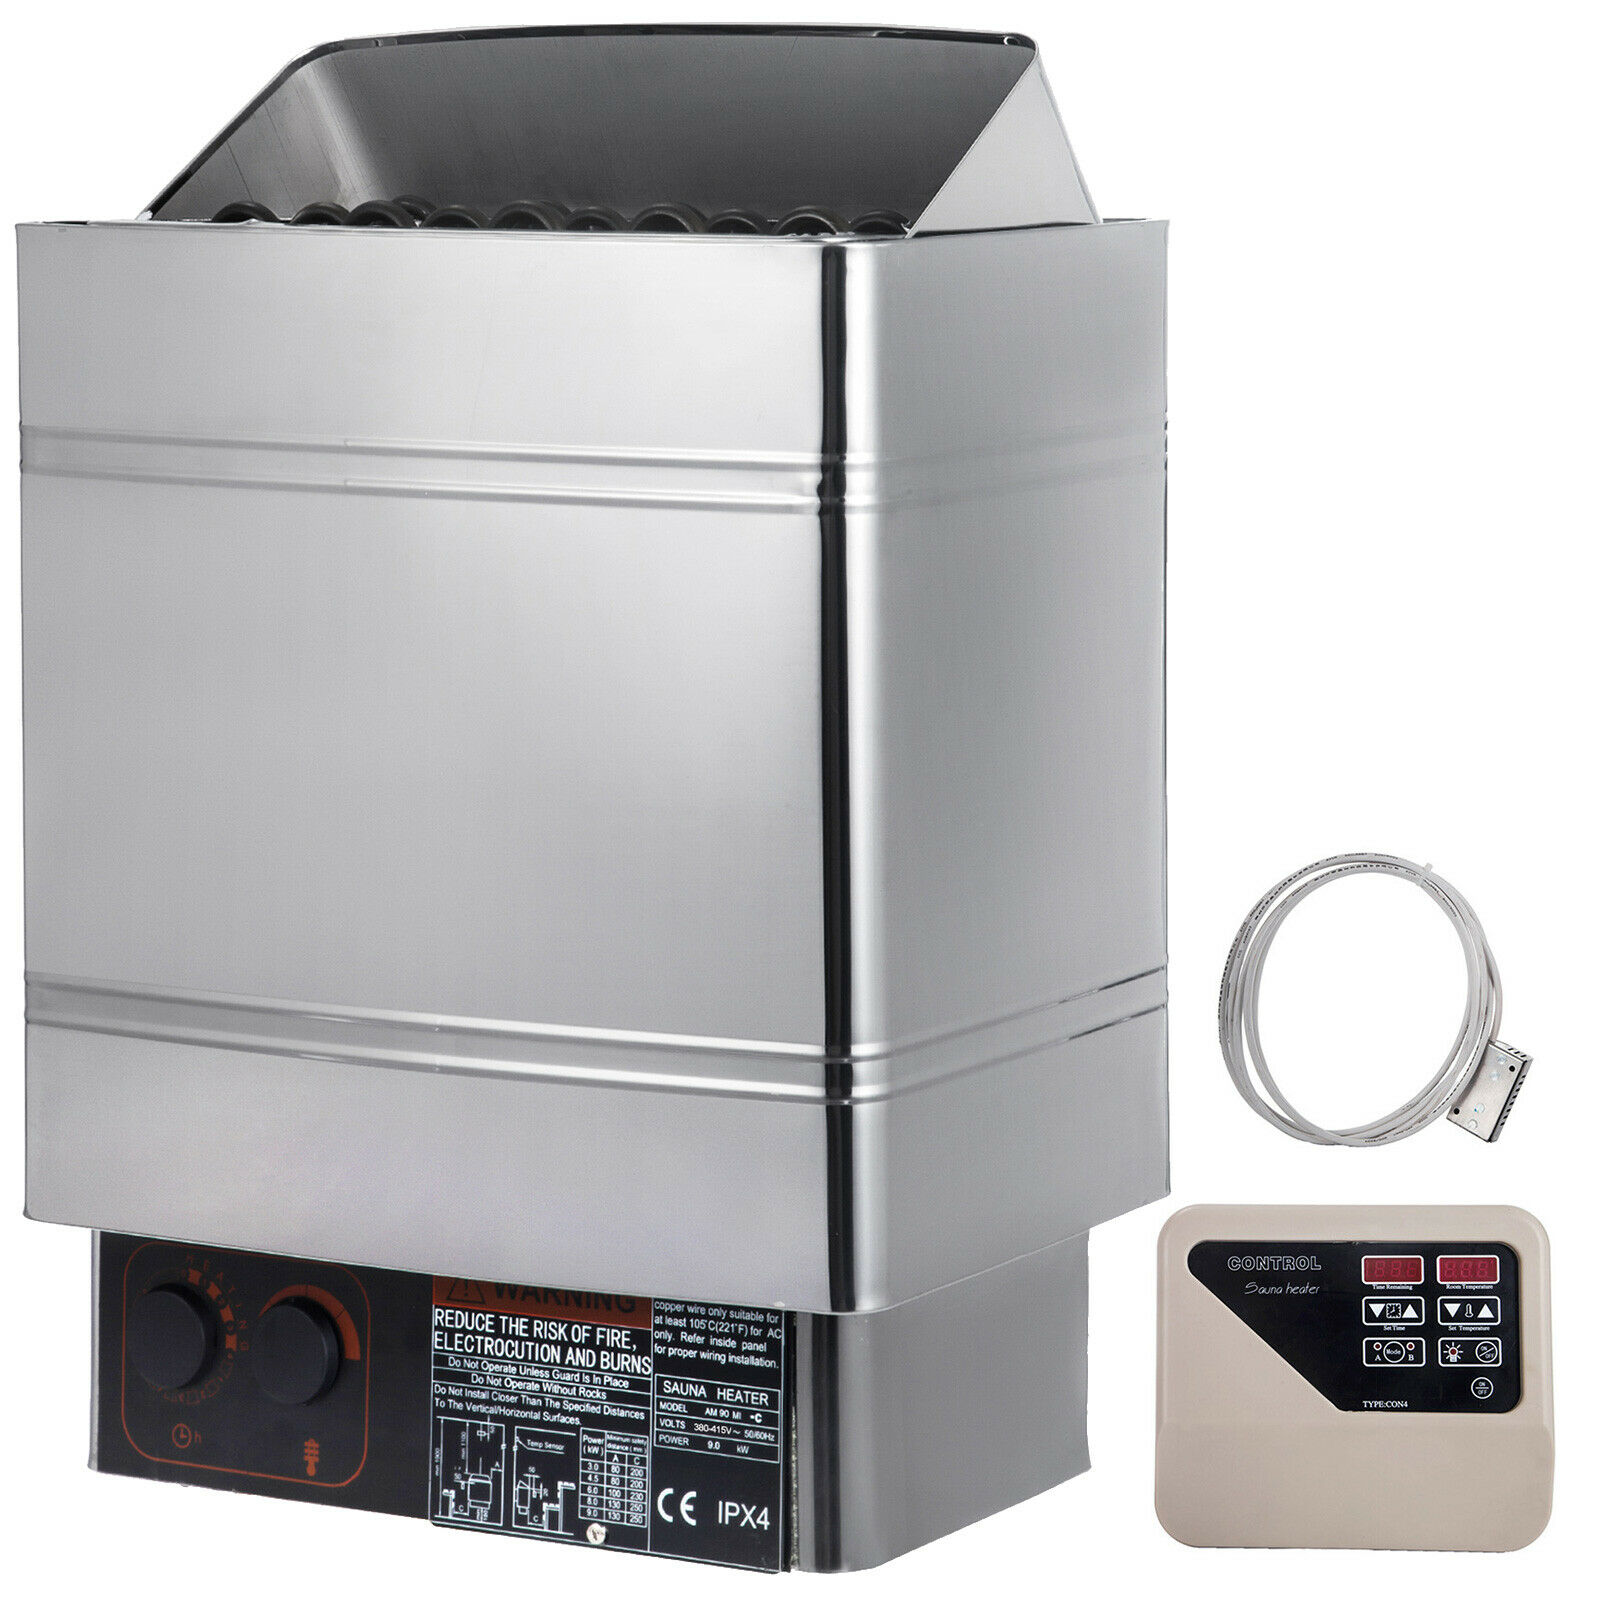 9KW Wet&Dry Sauna Heater Stove External Control Stainless Steel Spa Commercial